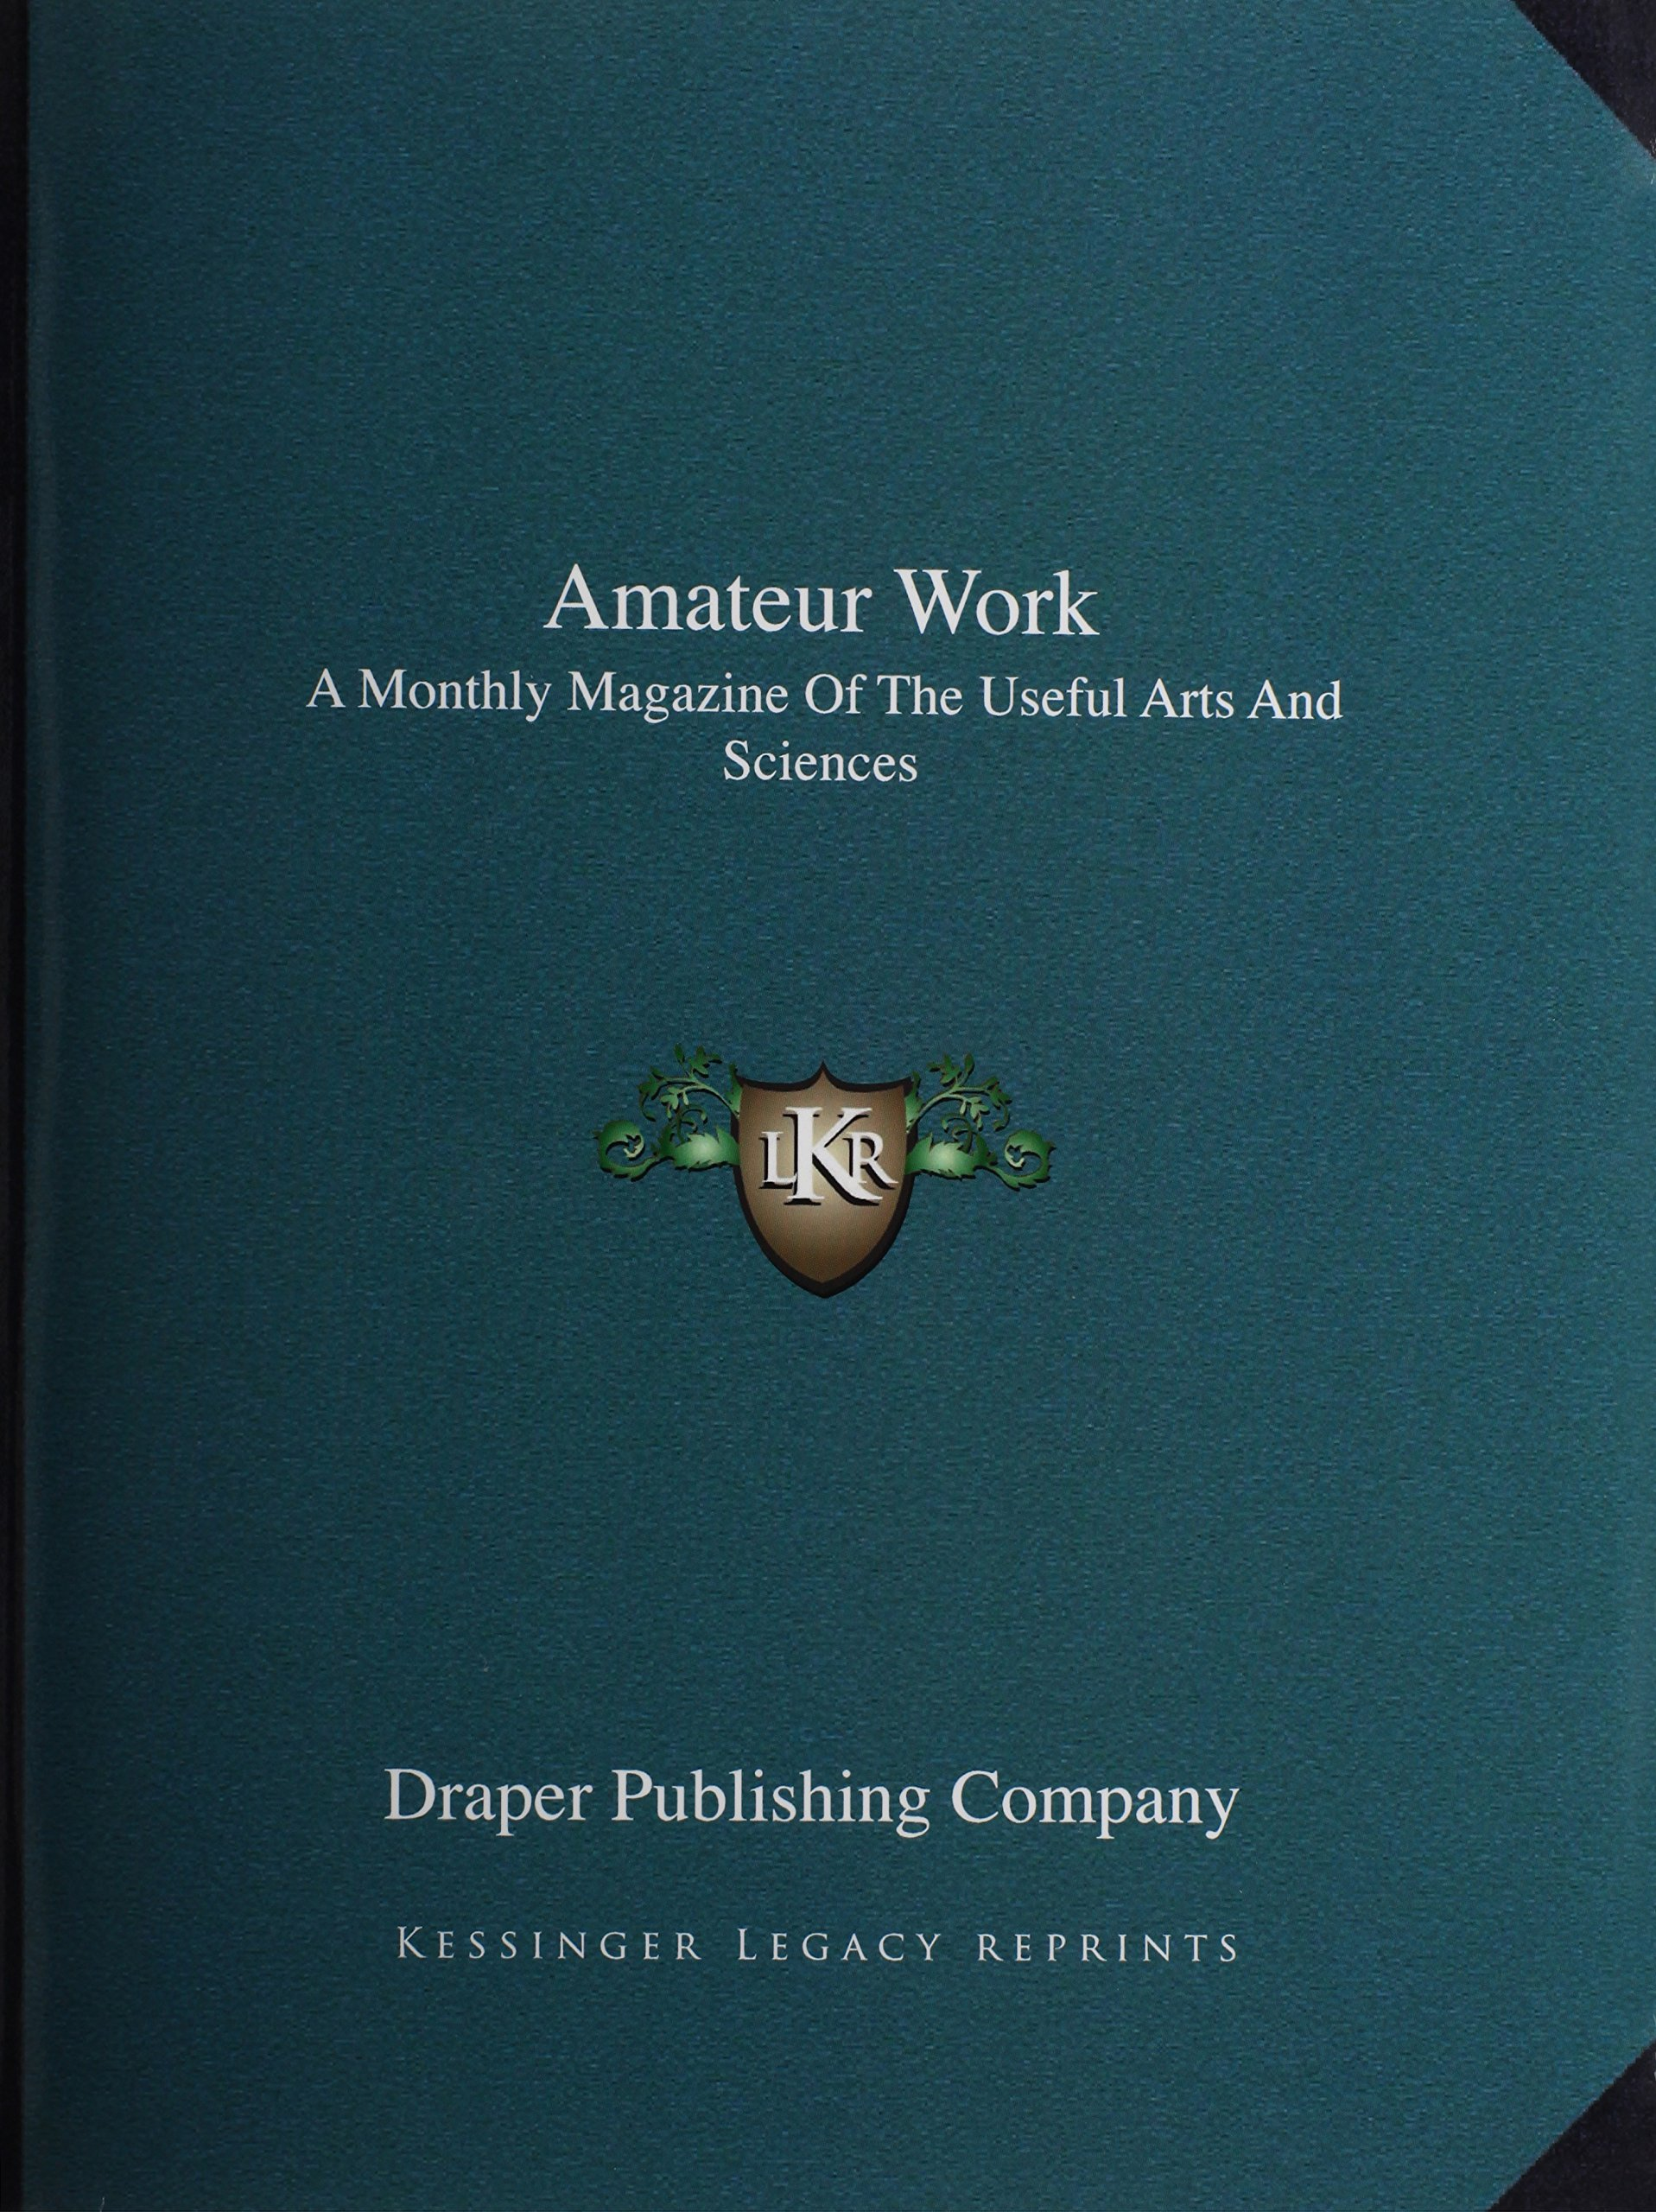 Amateur Work: A Monthly Magazine Of The Useful Arts And Sciences Paperback  – September 10, 2010